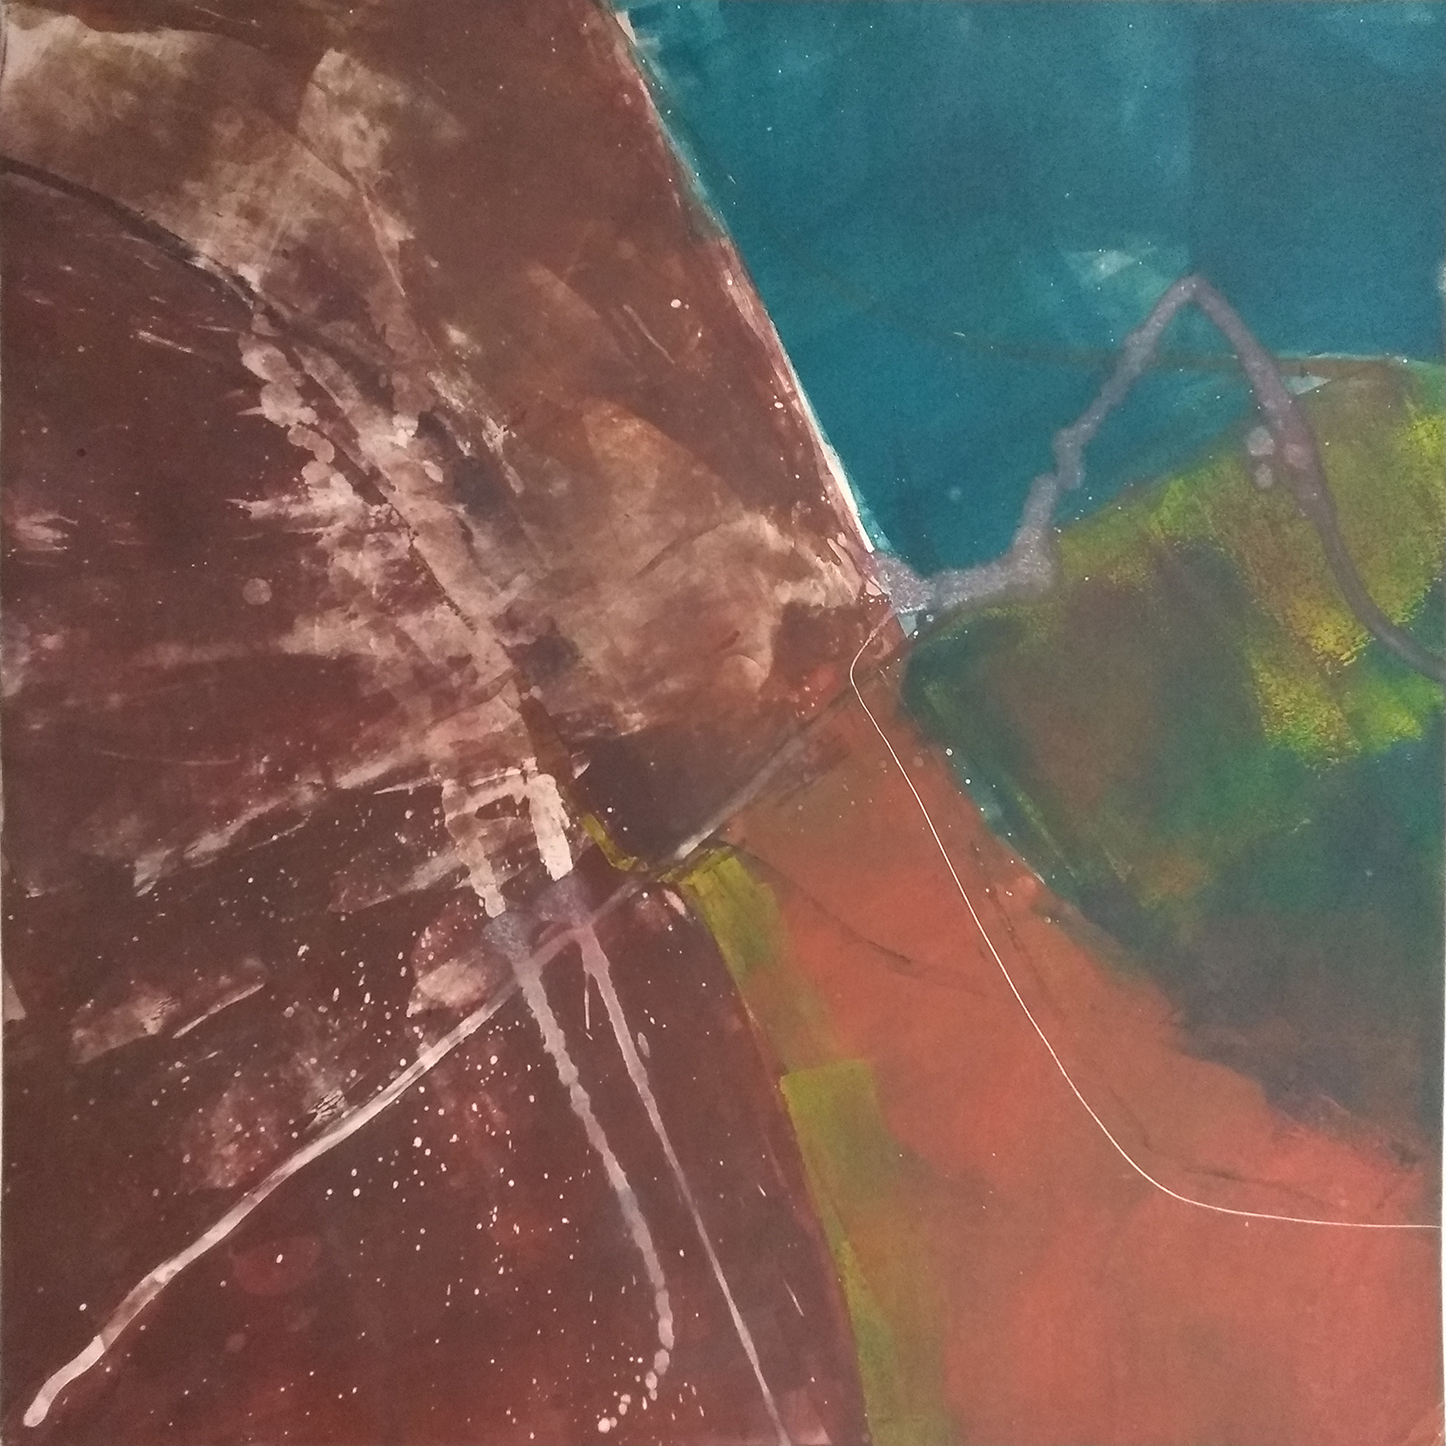 1 - oil based ink monoprint, 51 x 51 cms